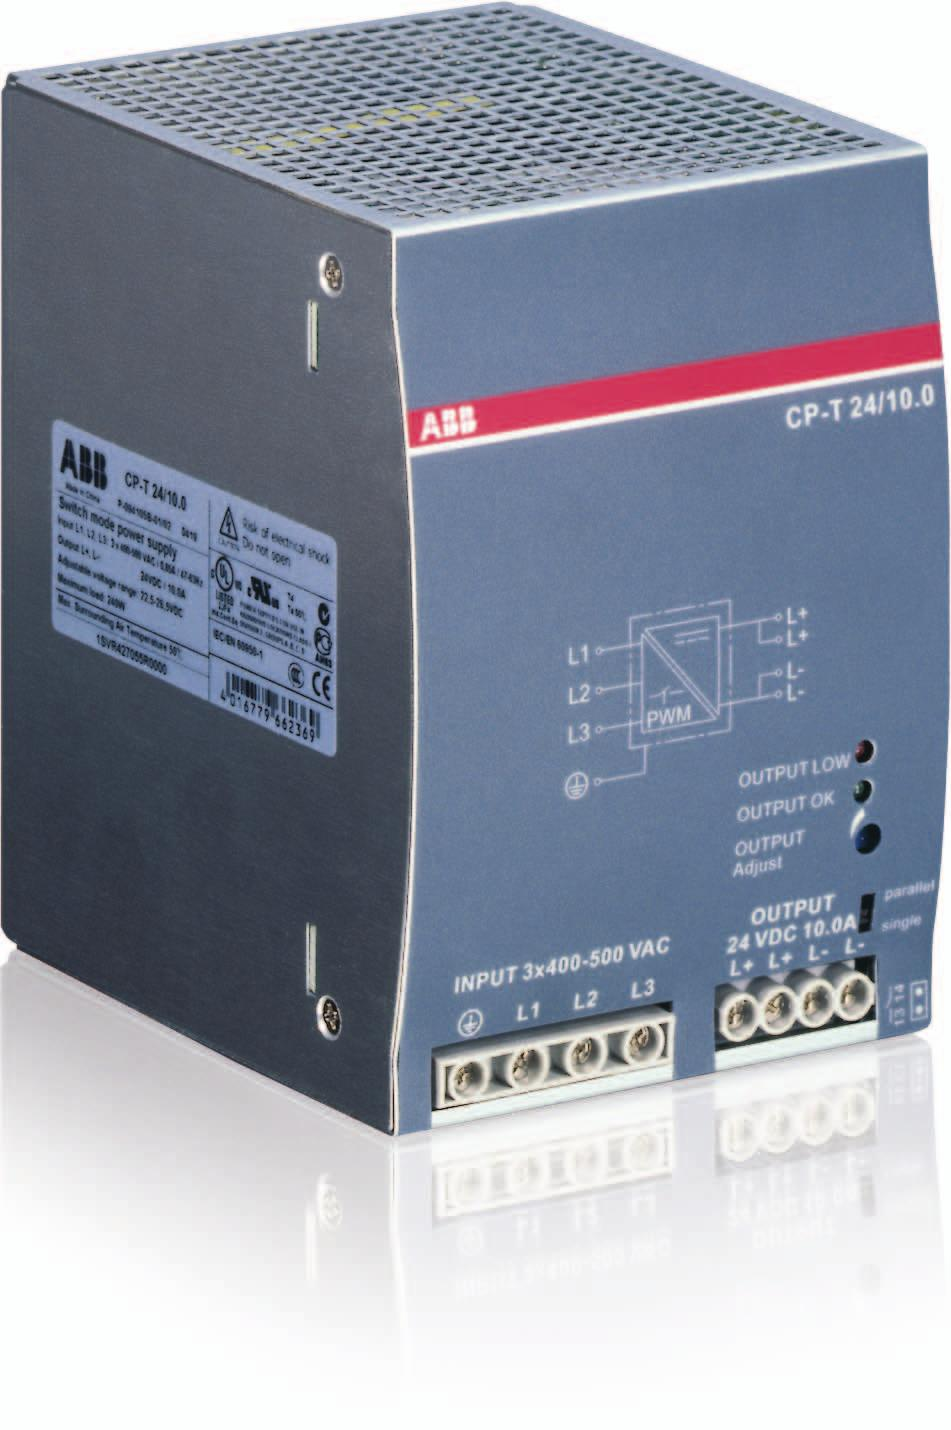 Data sheet Power supply CP-T 24/10.0 Primary switch mode power supply The CP-T range of three-phase power supply units is the youngest member of ABB s power supply family.